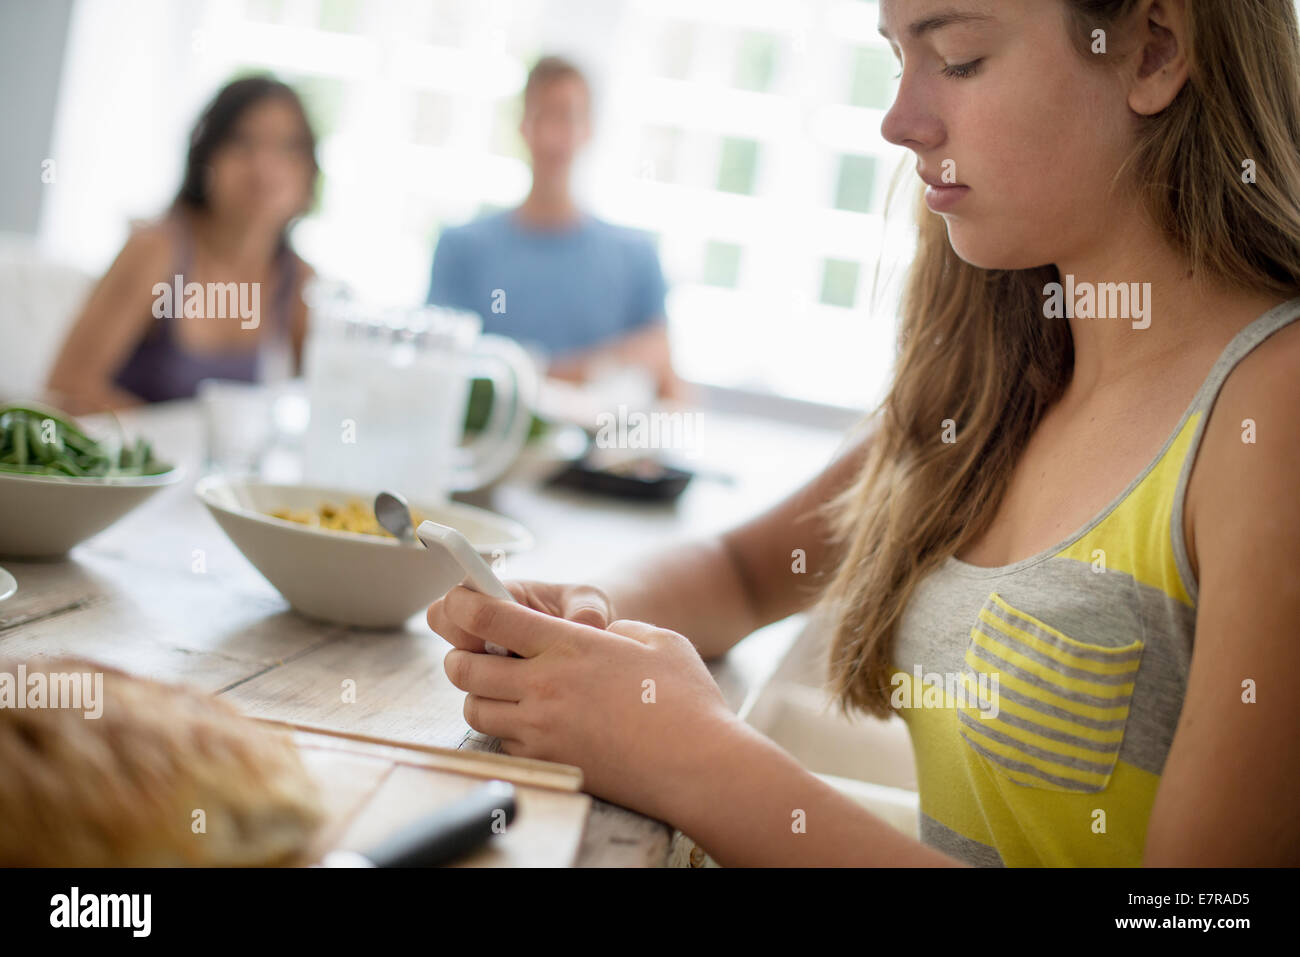 A young girl seated checking her smart phone at a dining table. Two people in the background. Stock Photo